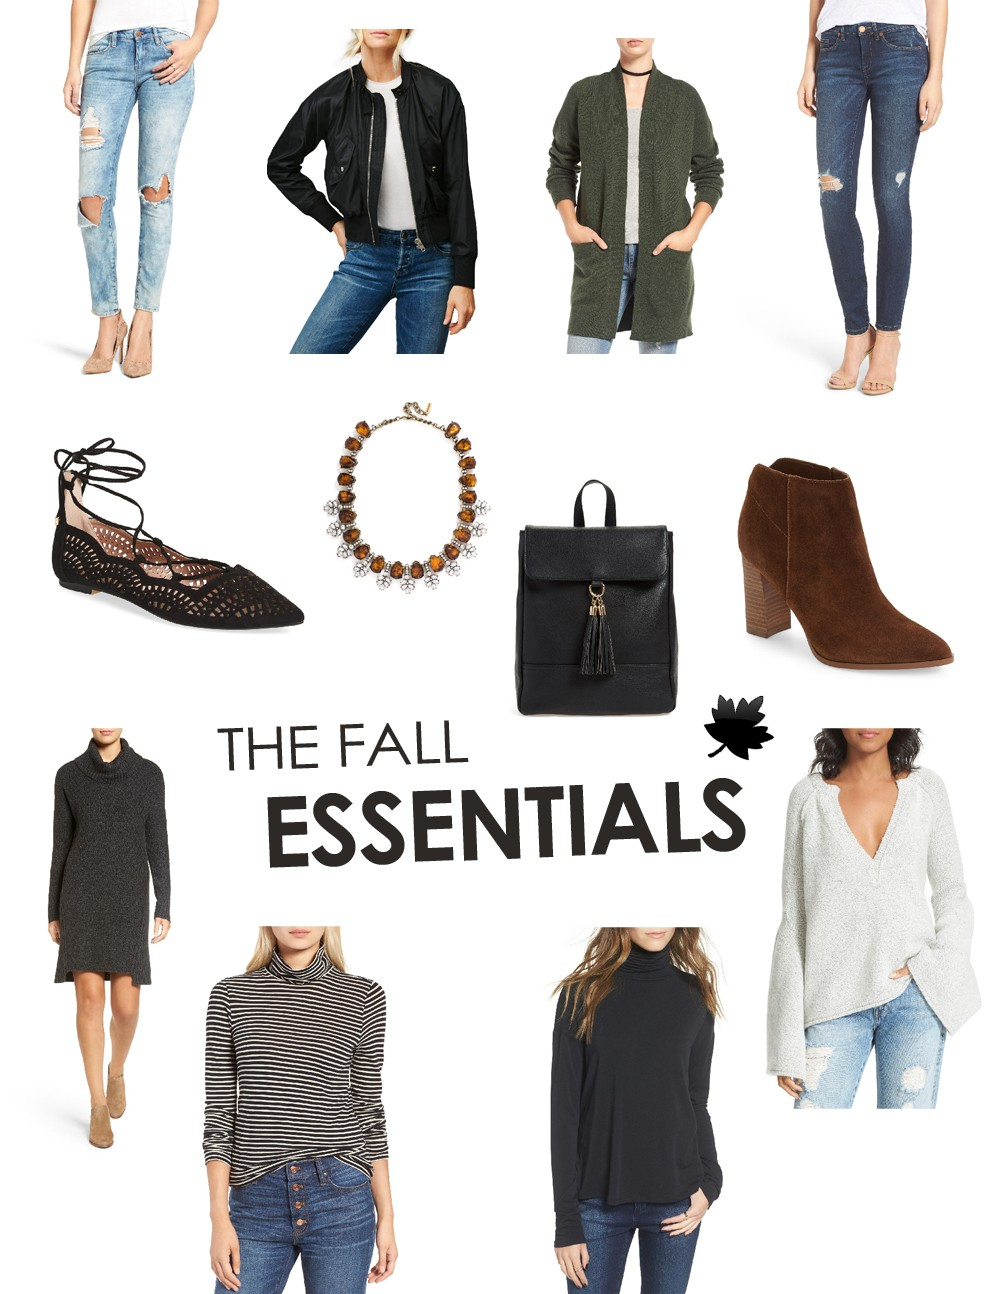 The Fall Essentials You Need In Your Closet - Under $100